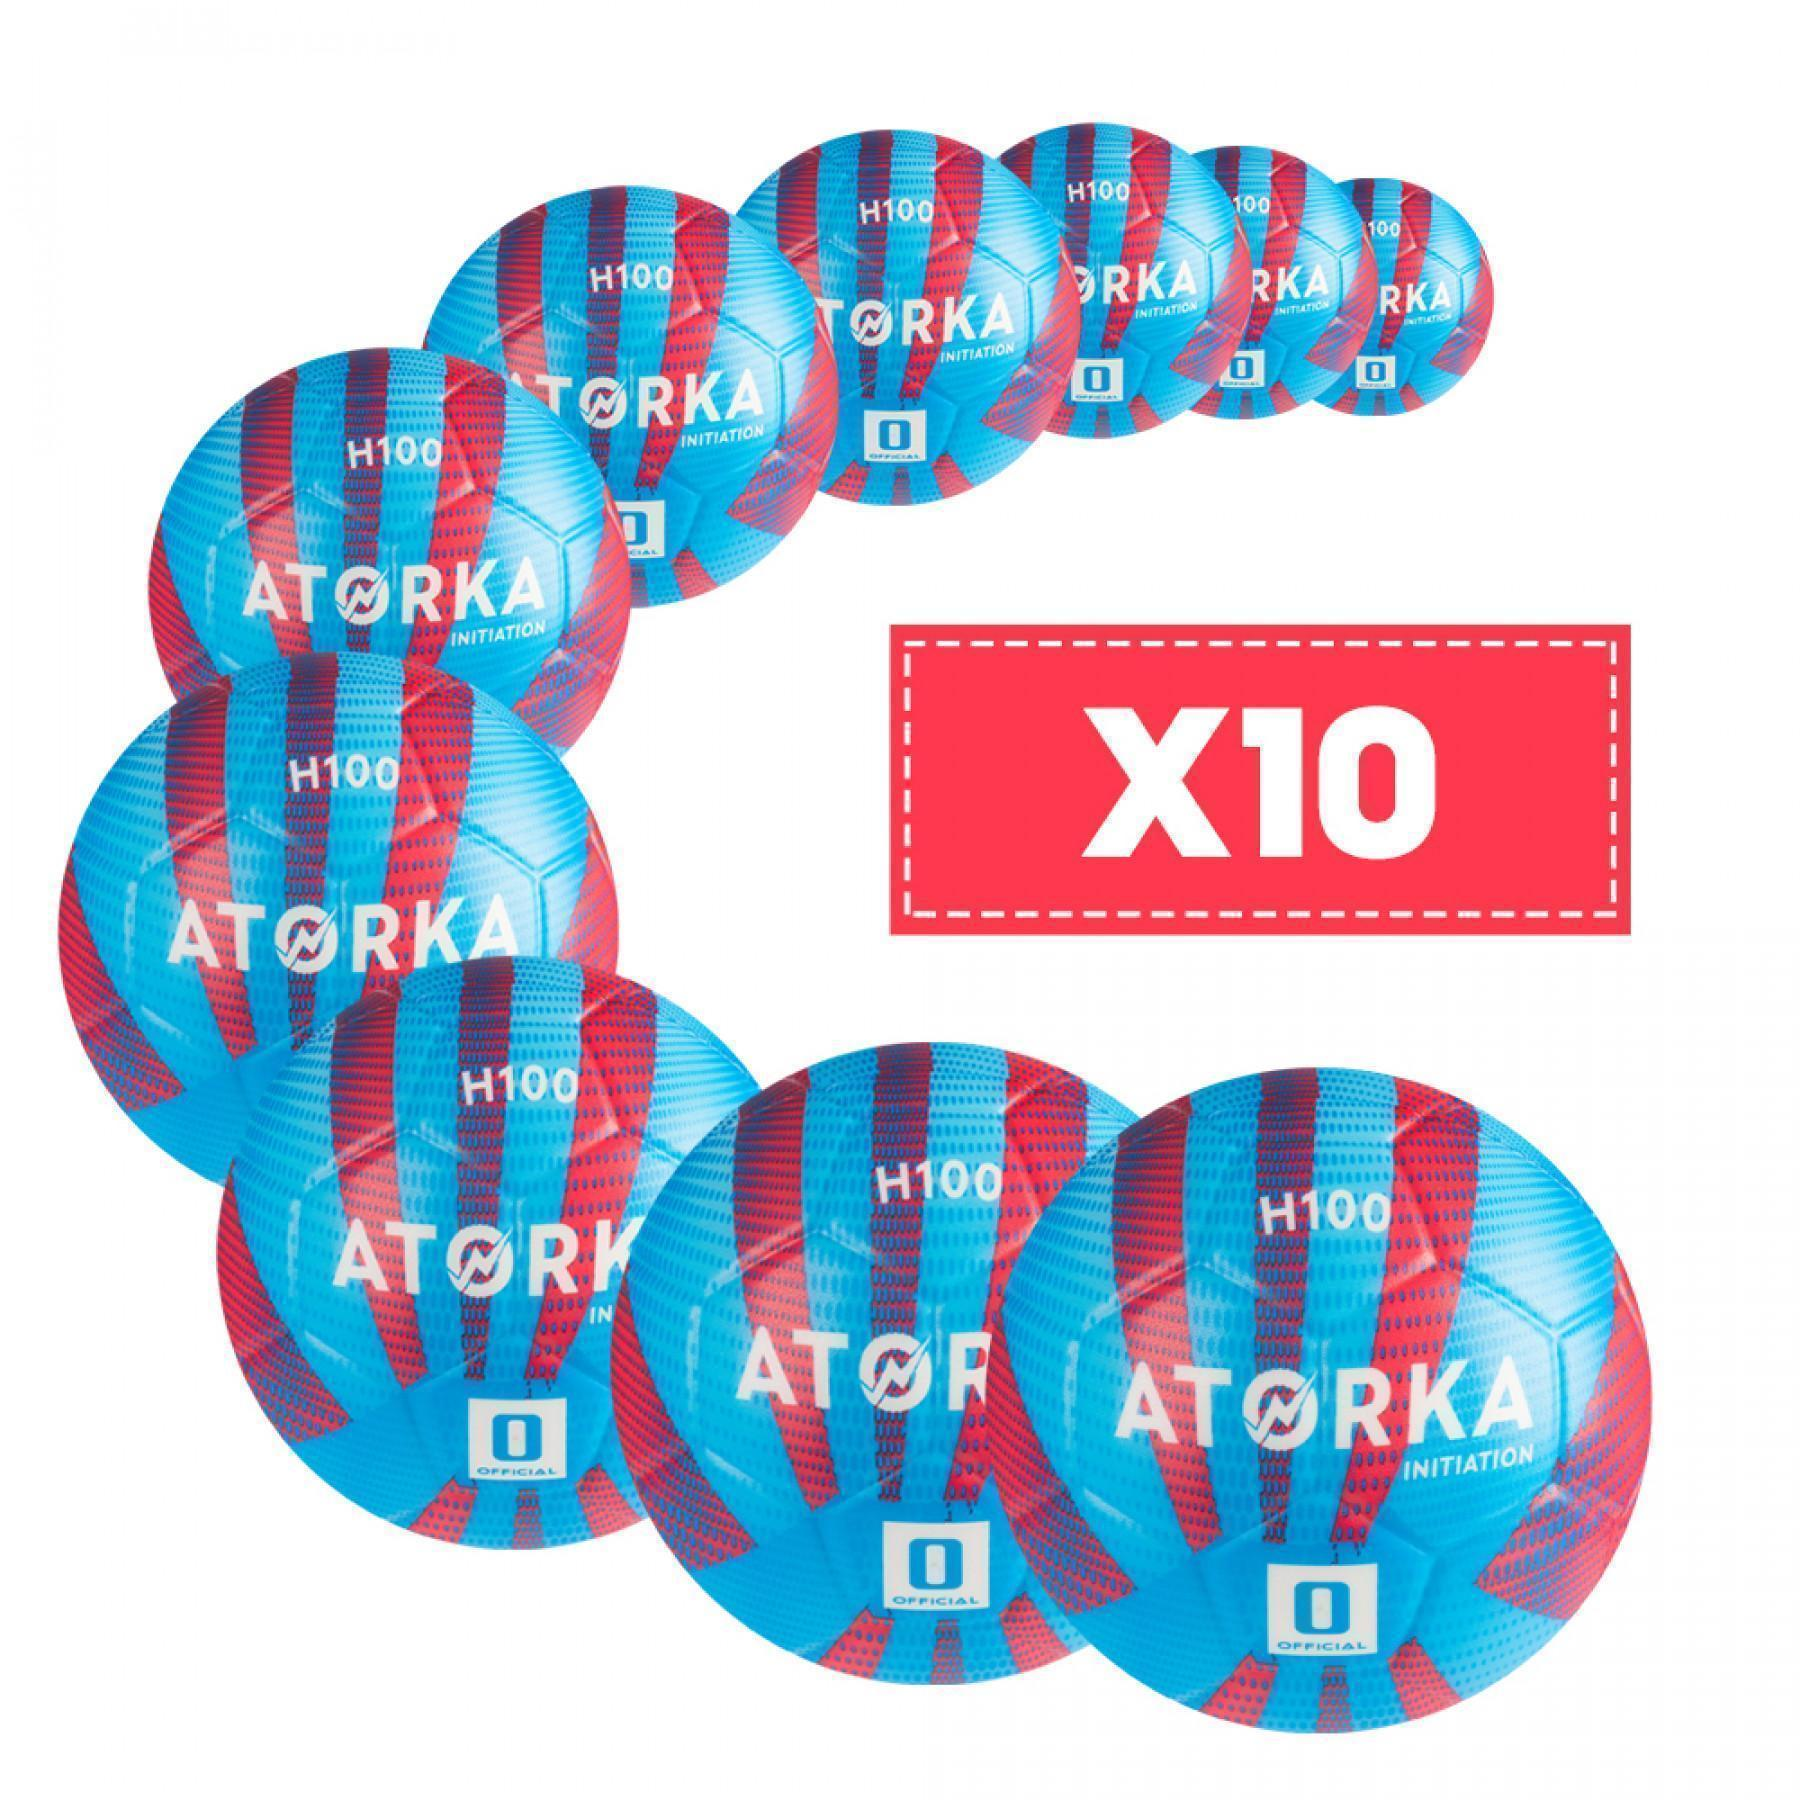 Pack of 10 children's balloons Atorka H100 Initiation